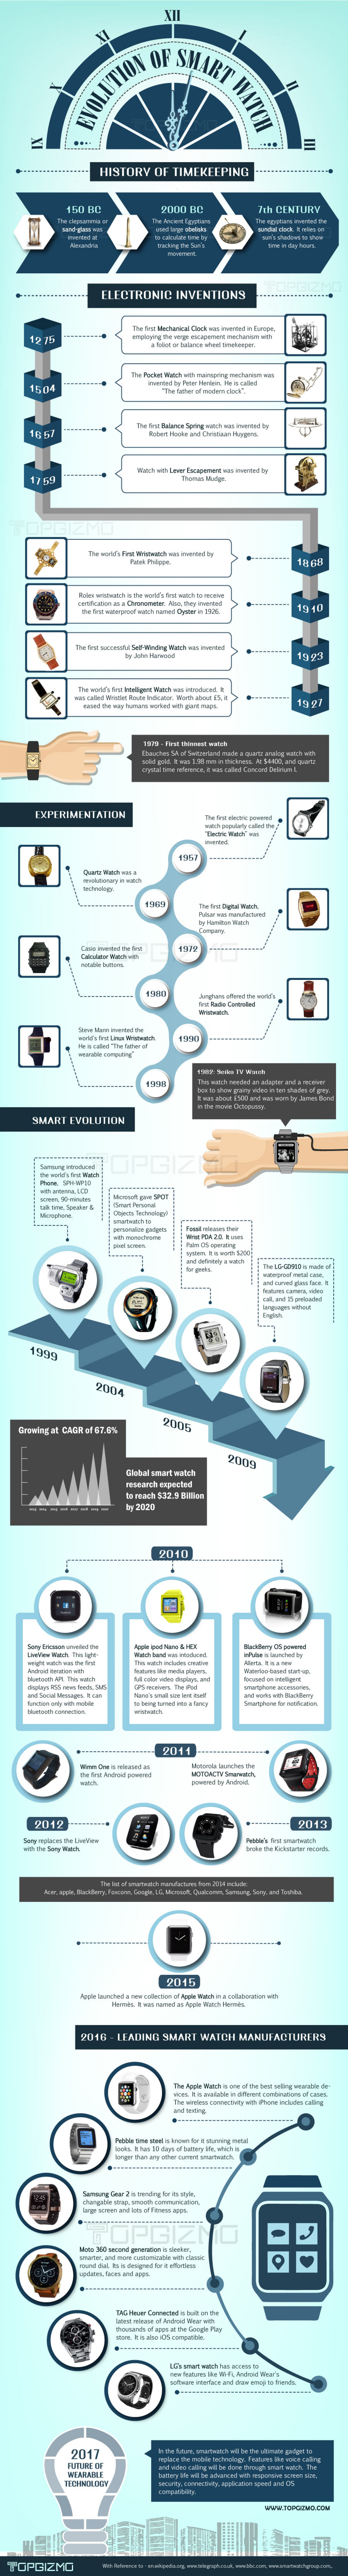 Evolution Of Smartwatches With Time Infographic